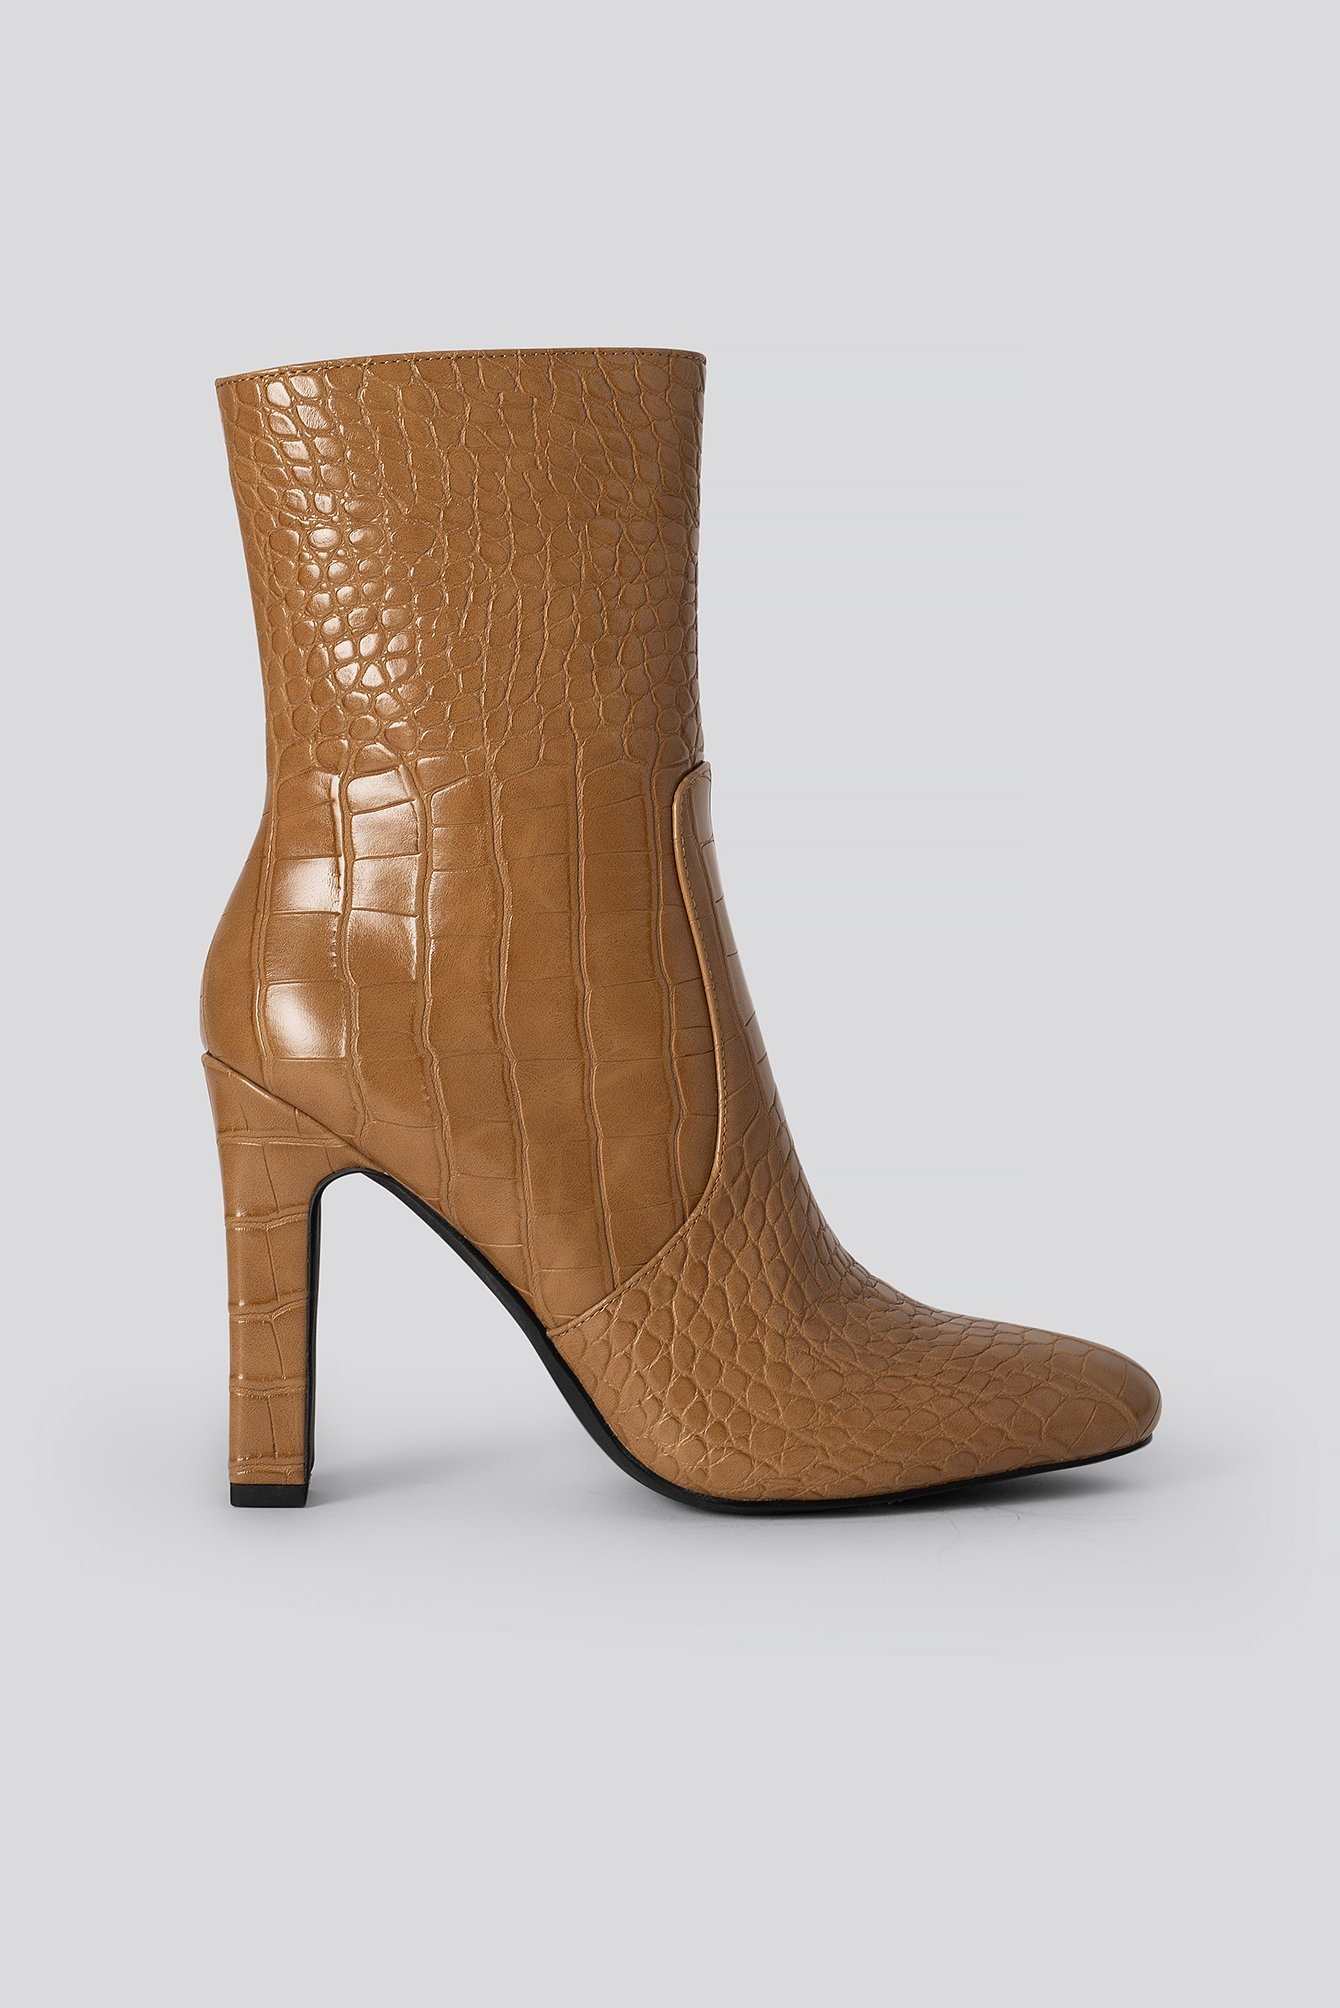 na-kd shoes -  Glossy Reptile Booties - Brown